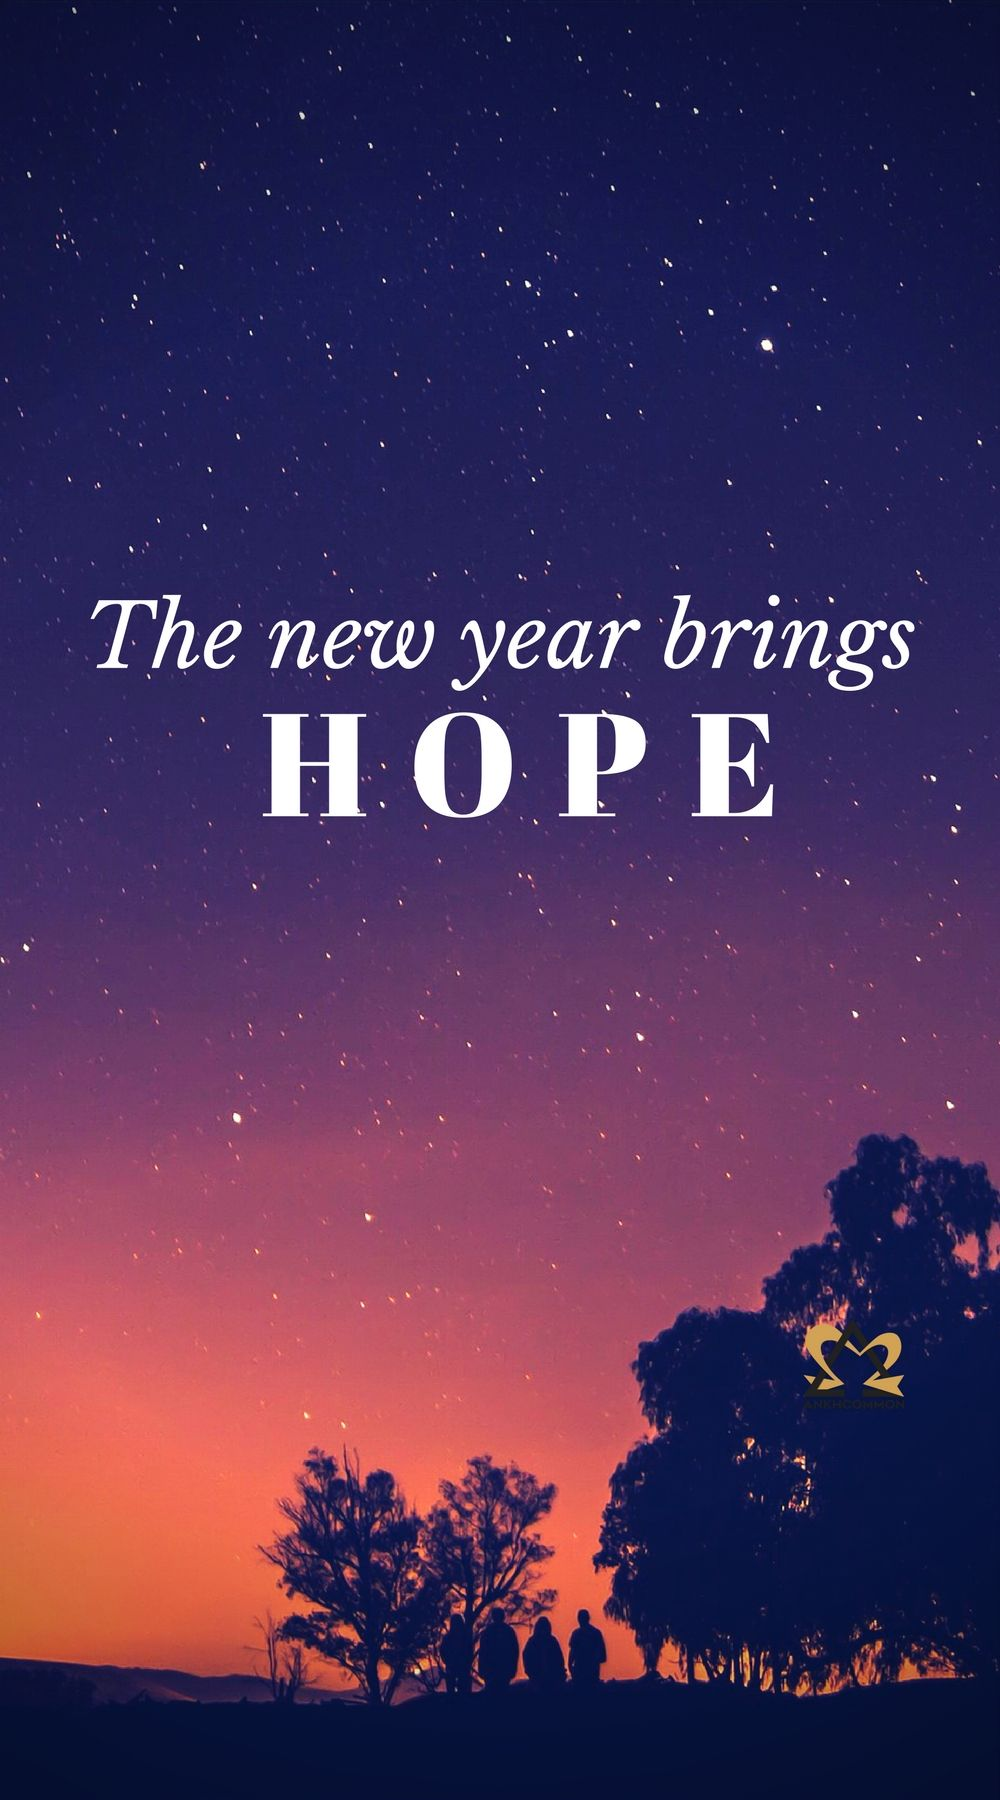 Symbol Of Hope Happy New Year And A Fresh Start Life Humor Inspirational Pictures Hope Symbol